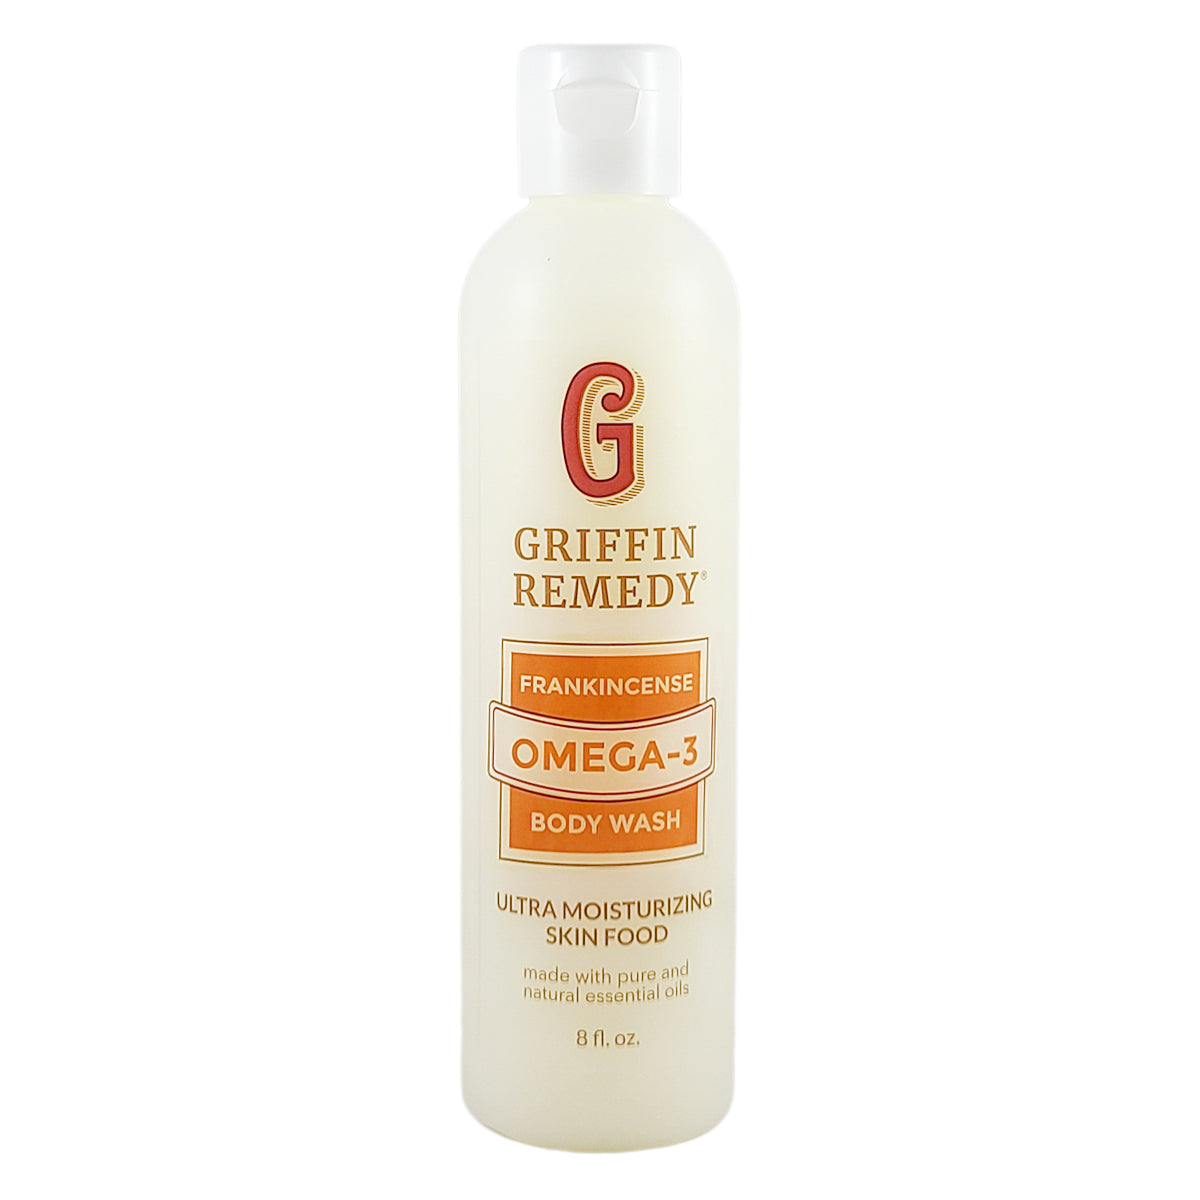 Omega-3 Creamy Body Wash Frankincense